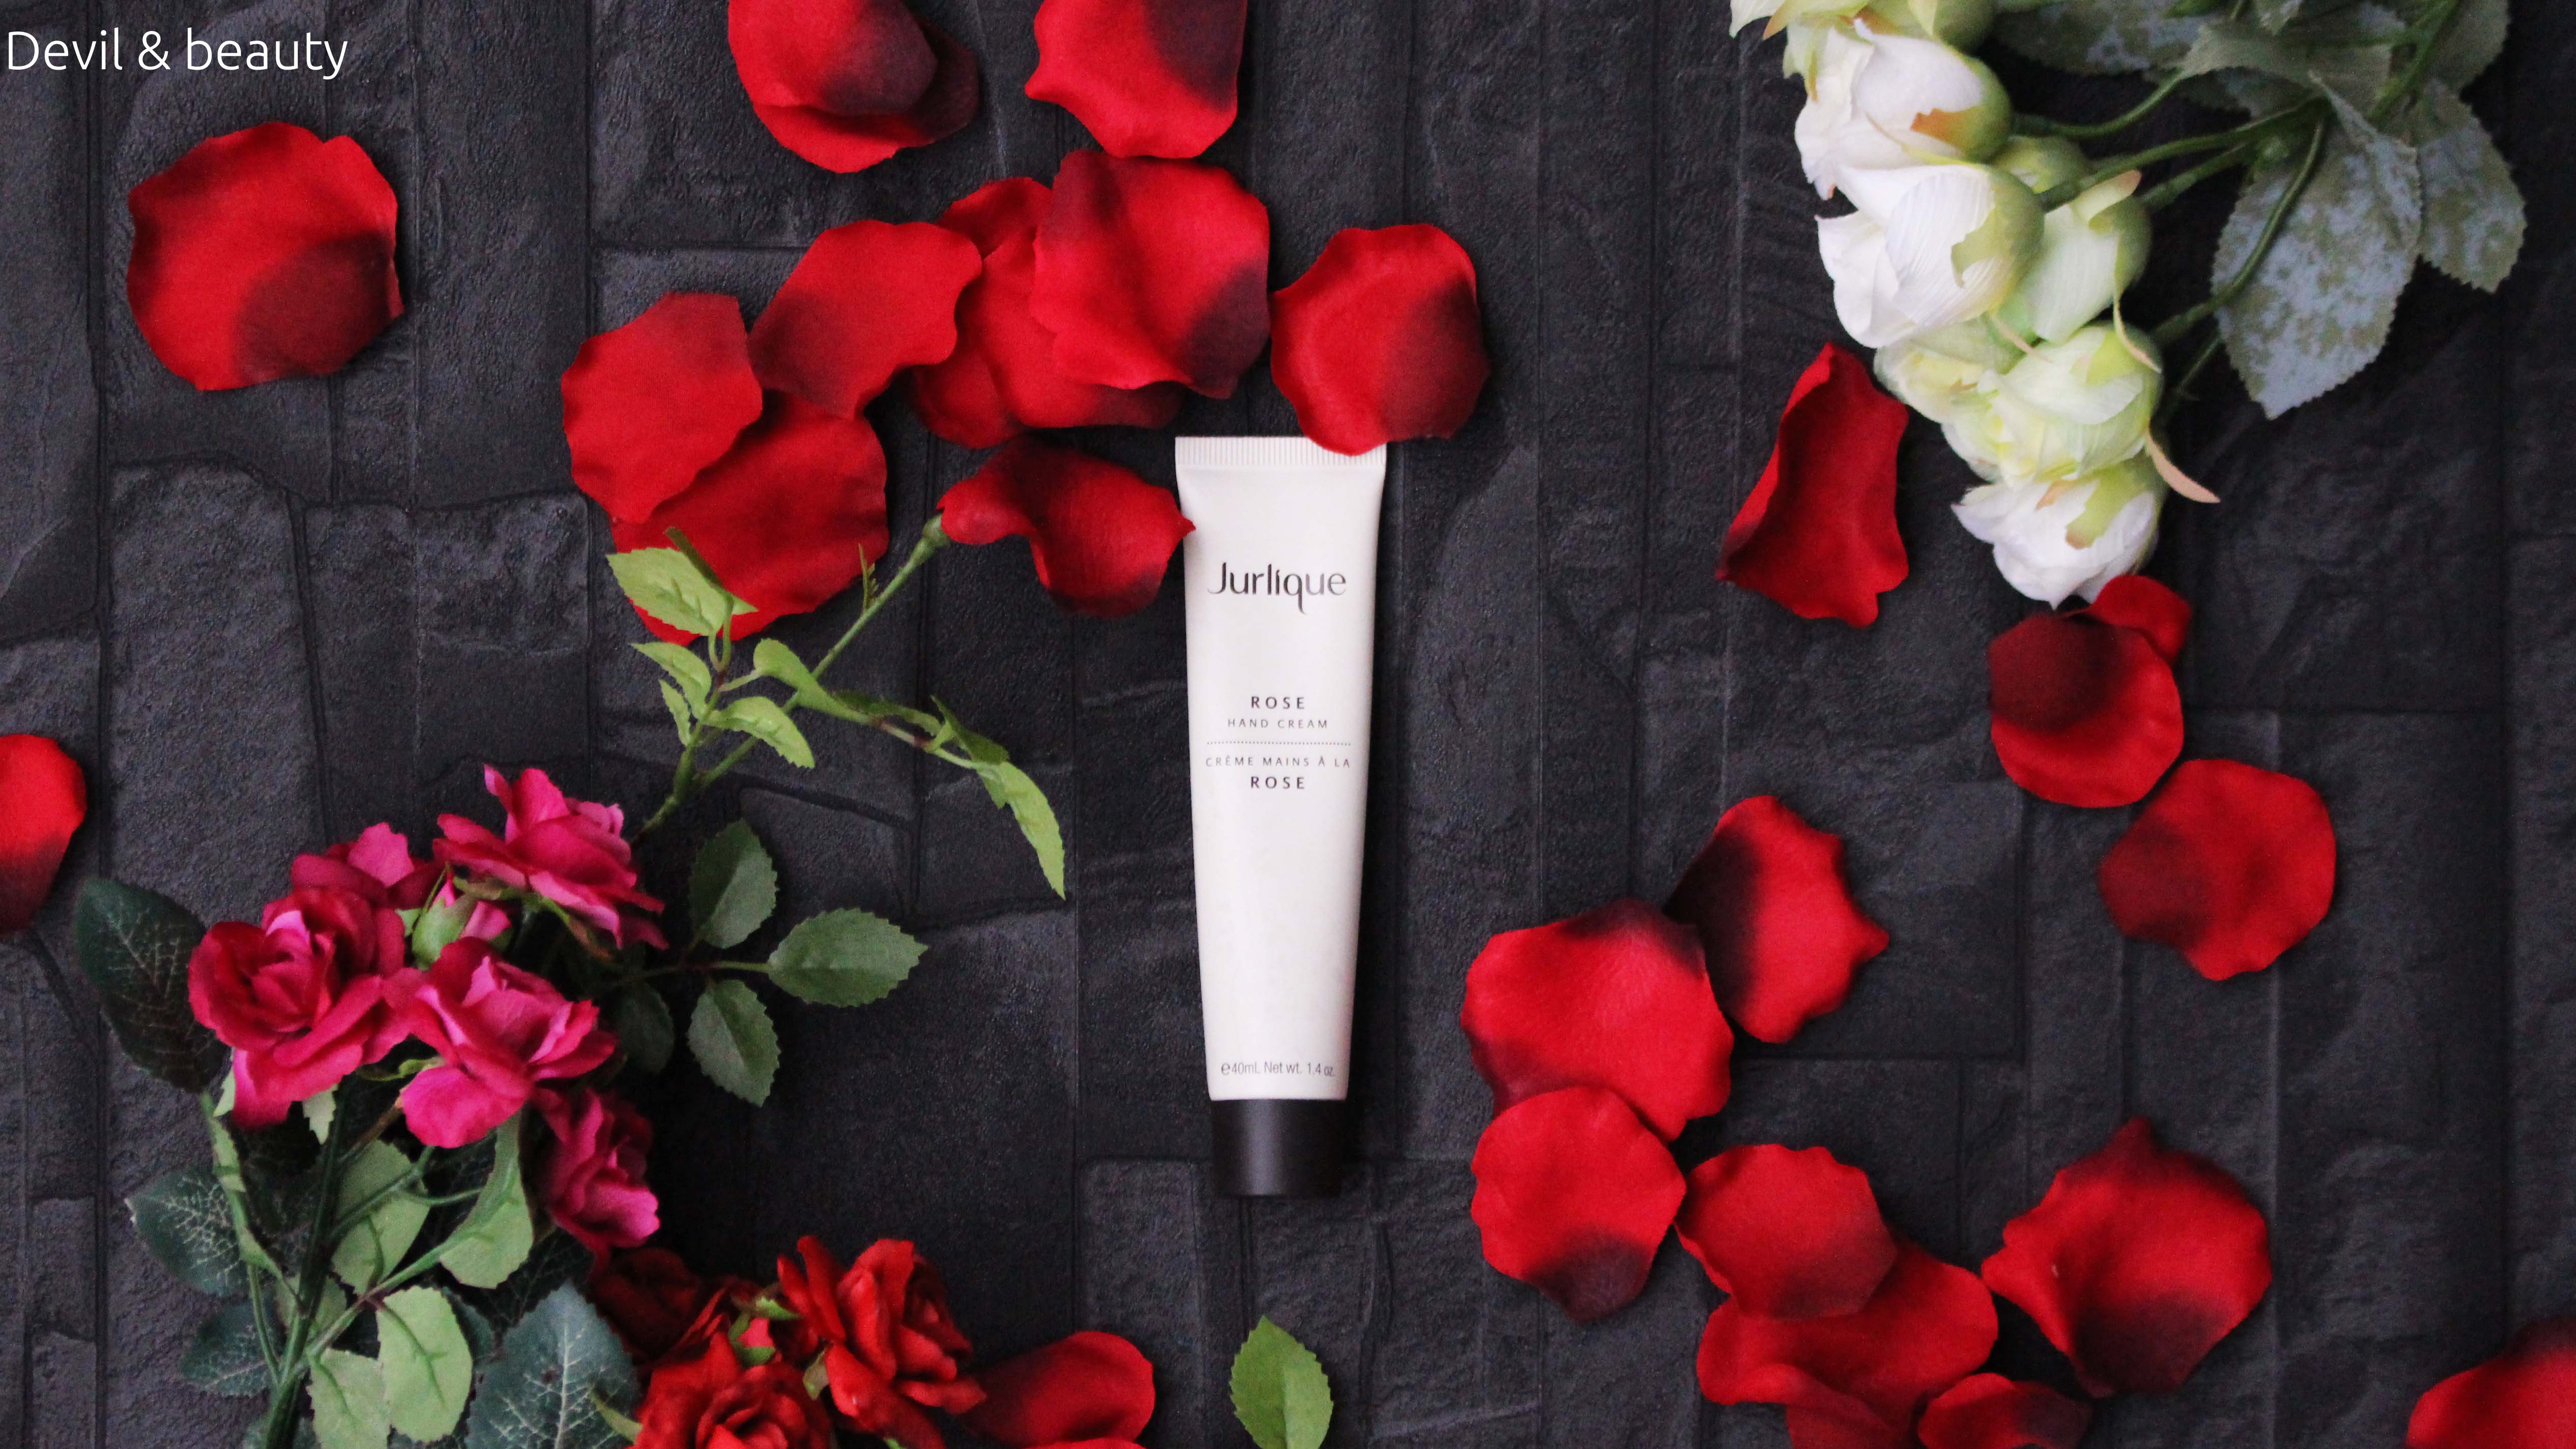 jurlique-rose-hand-cream10 - image